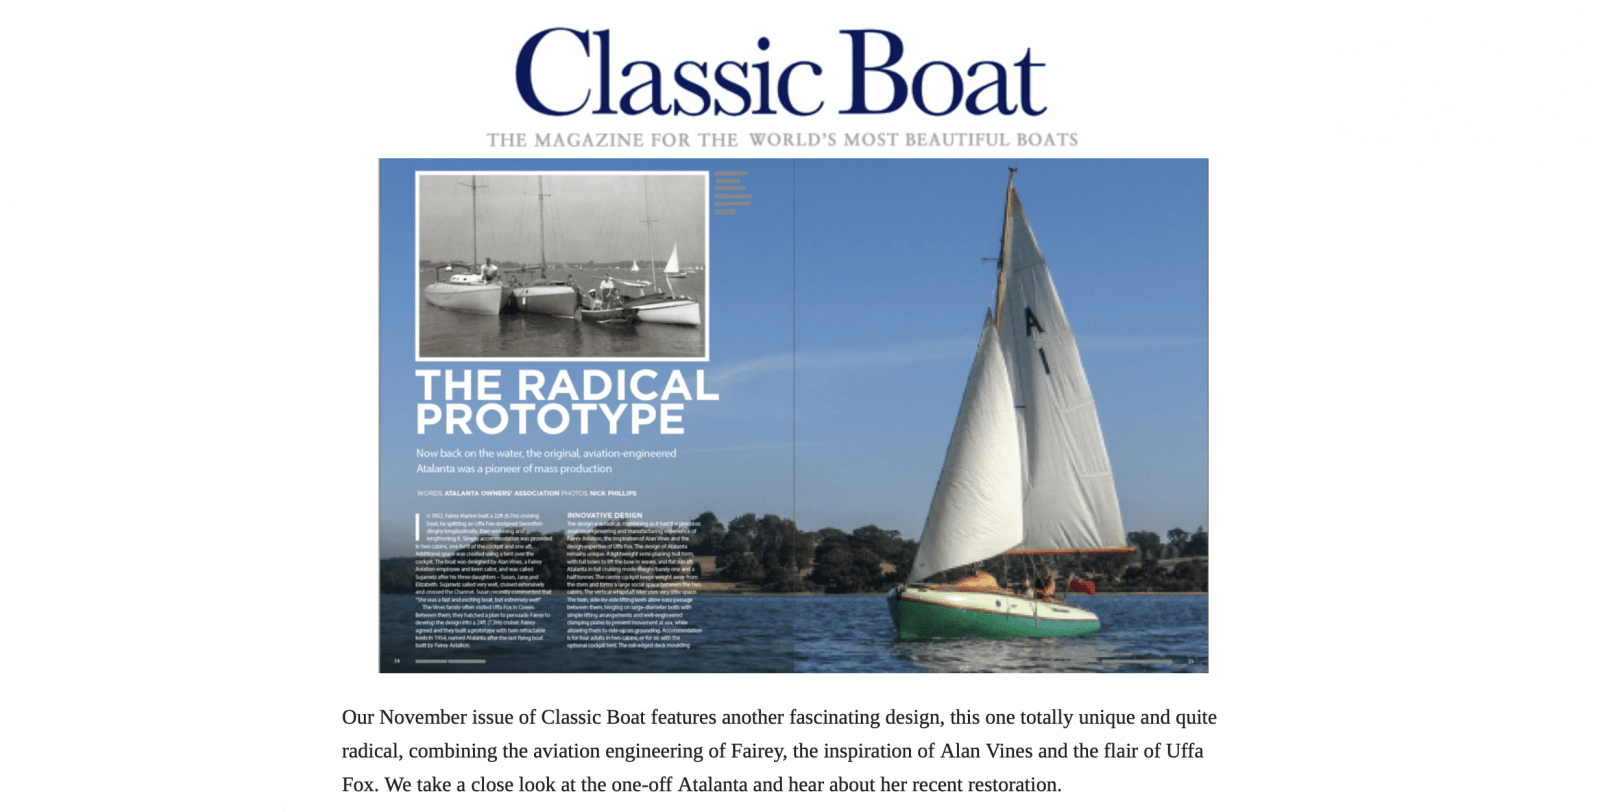 Classic Boat A1 Design and Restoration Review